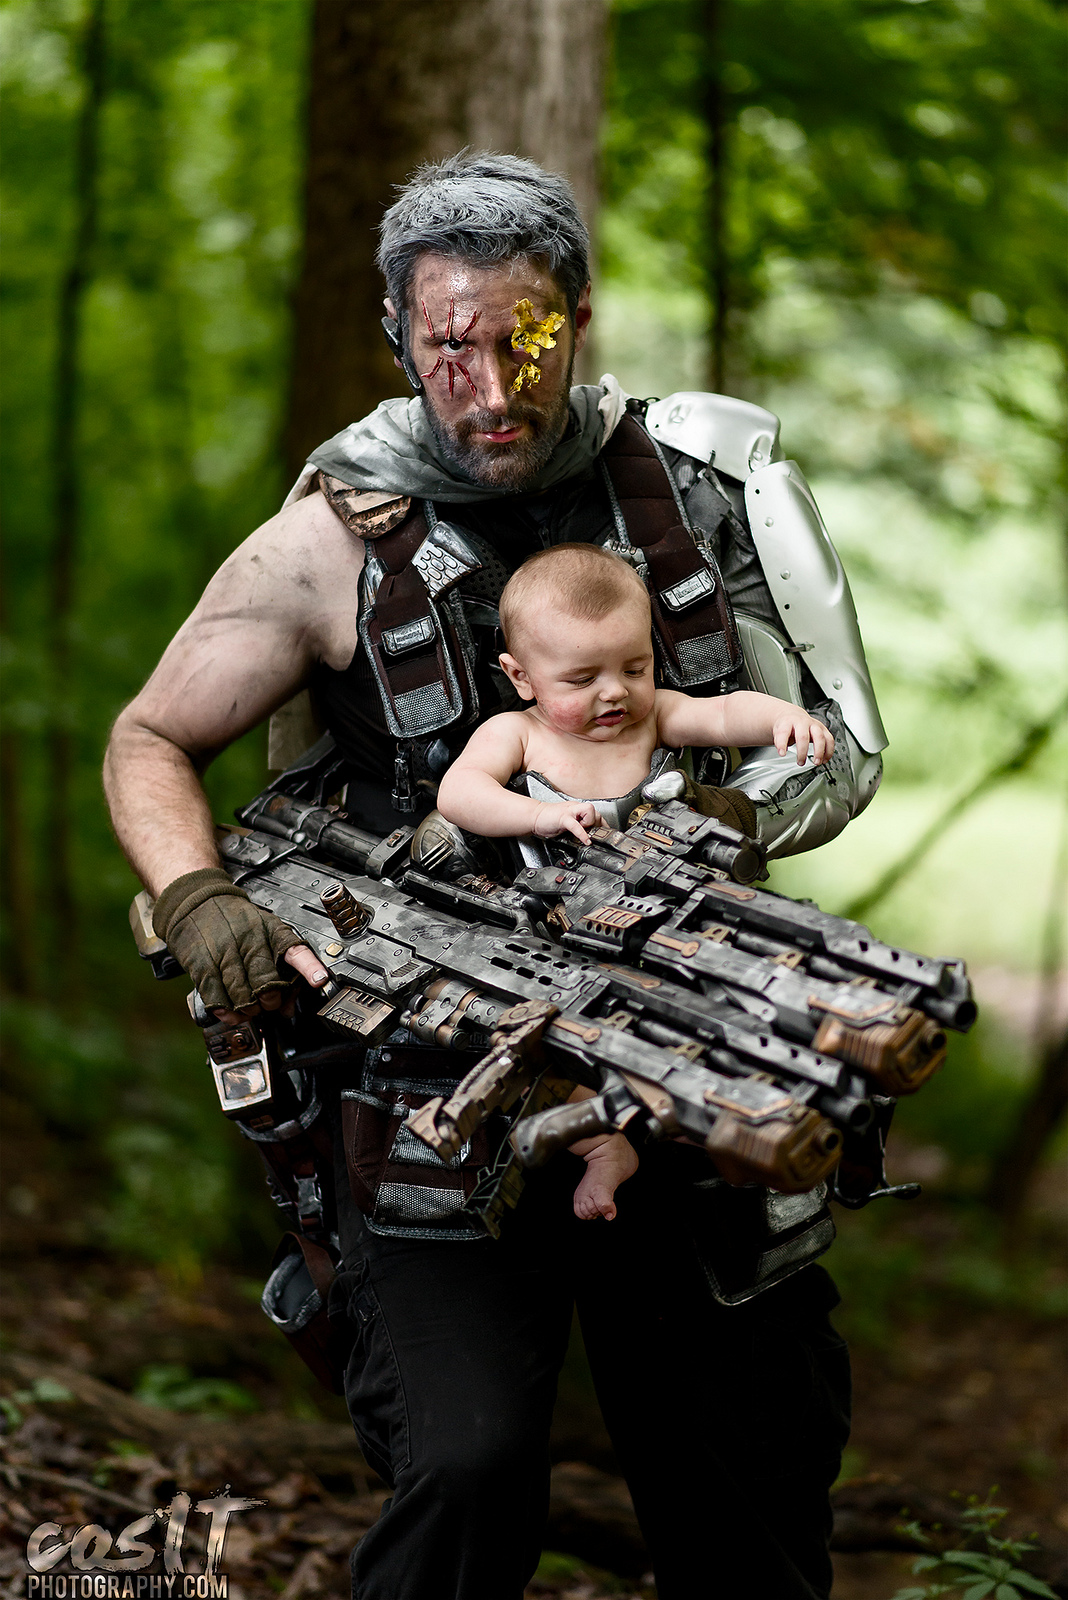 James Wulfgar as Cable and Hope.